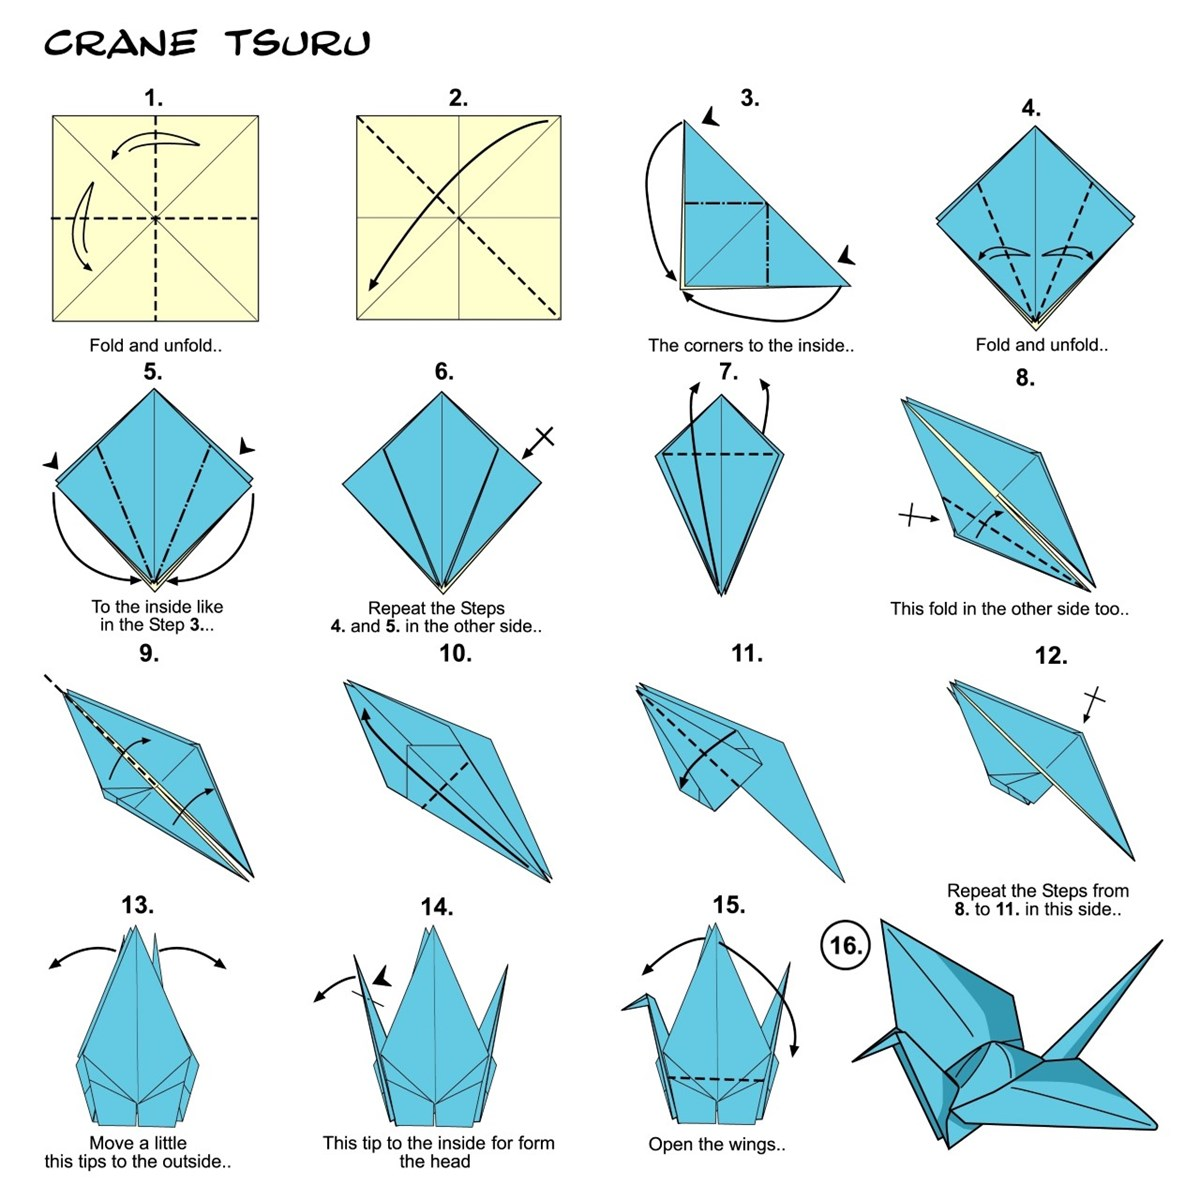 Illustrated step-by-step instructions for folding an origami crane, featuring diagrams and brief text instructions